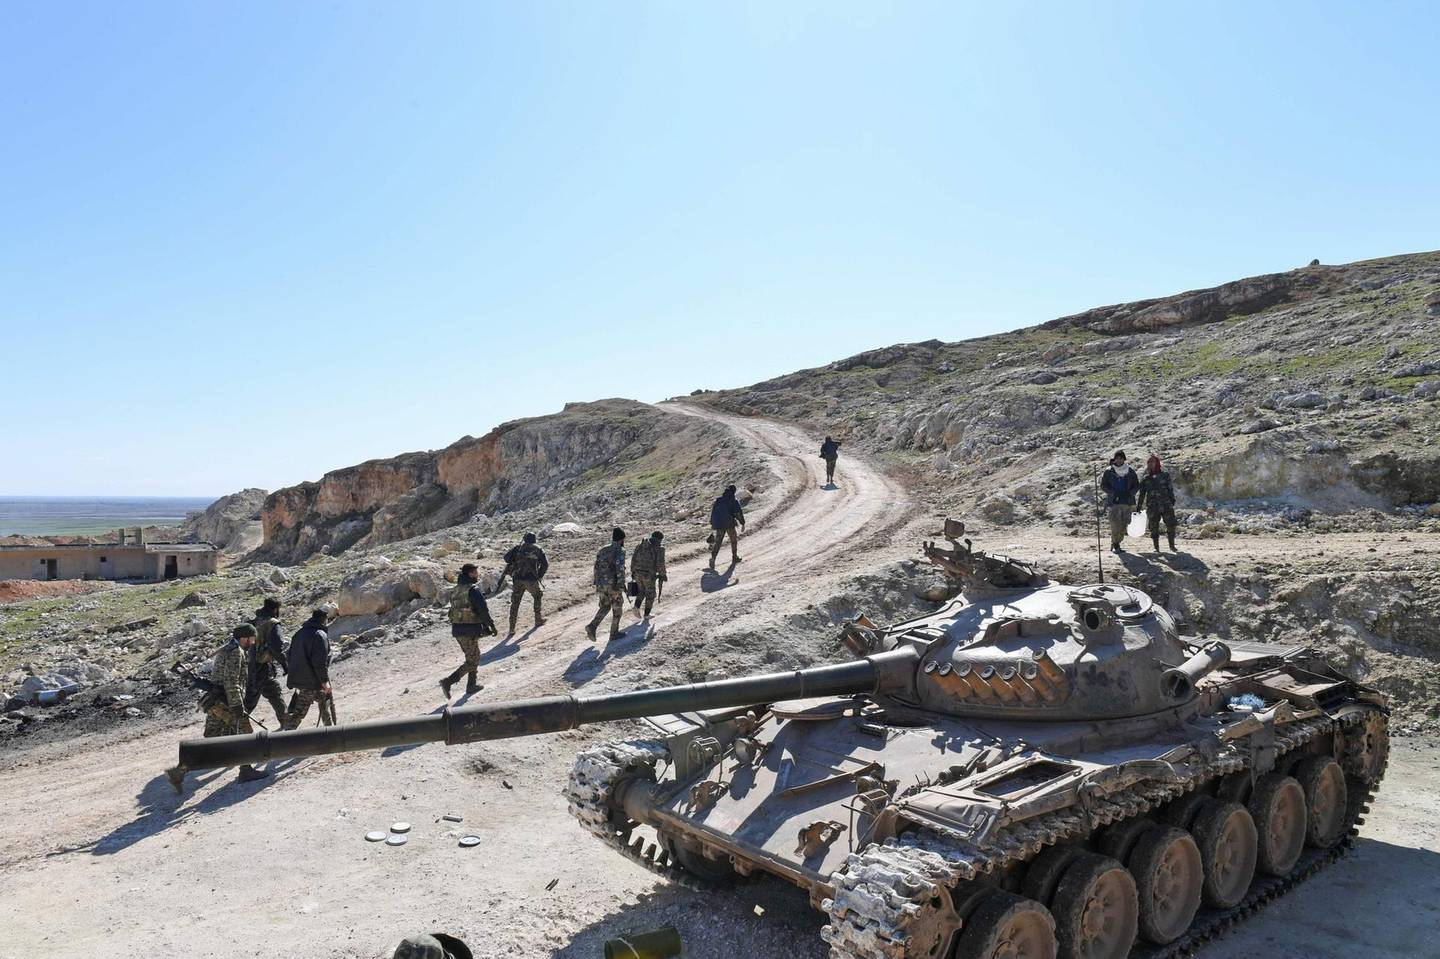 Syrian army units advance in the town of al-Eis in south Aleppo province on February 9, 2020, following battles with rebels and jihadists. Al-Eis, which overlooks the M5, was on a front that saw fierce fighting between the regime and its opponents in 2016. Syrian troops advancing north of Idlib linked up near Al-Eis with their comrades pushing south of Aleppo on Saturday, state news agency SANA said. The two units had recently waged separate battles in rural Aleppo and southern Idlib, but are now conjoined for the first time as they push north along the M5 highway.  / AFP / -